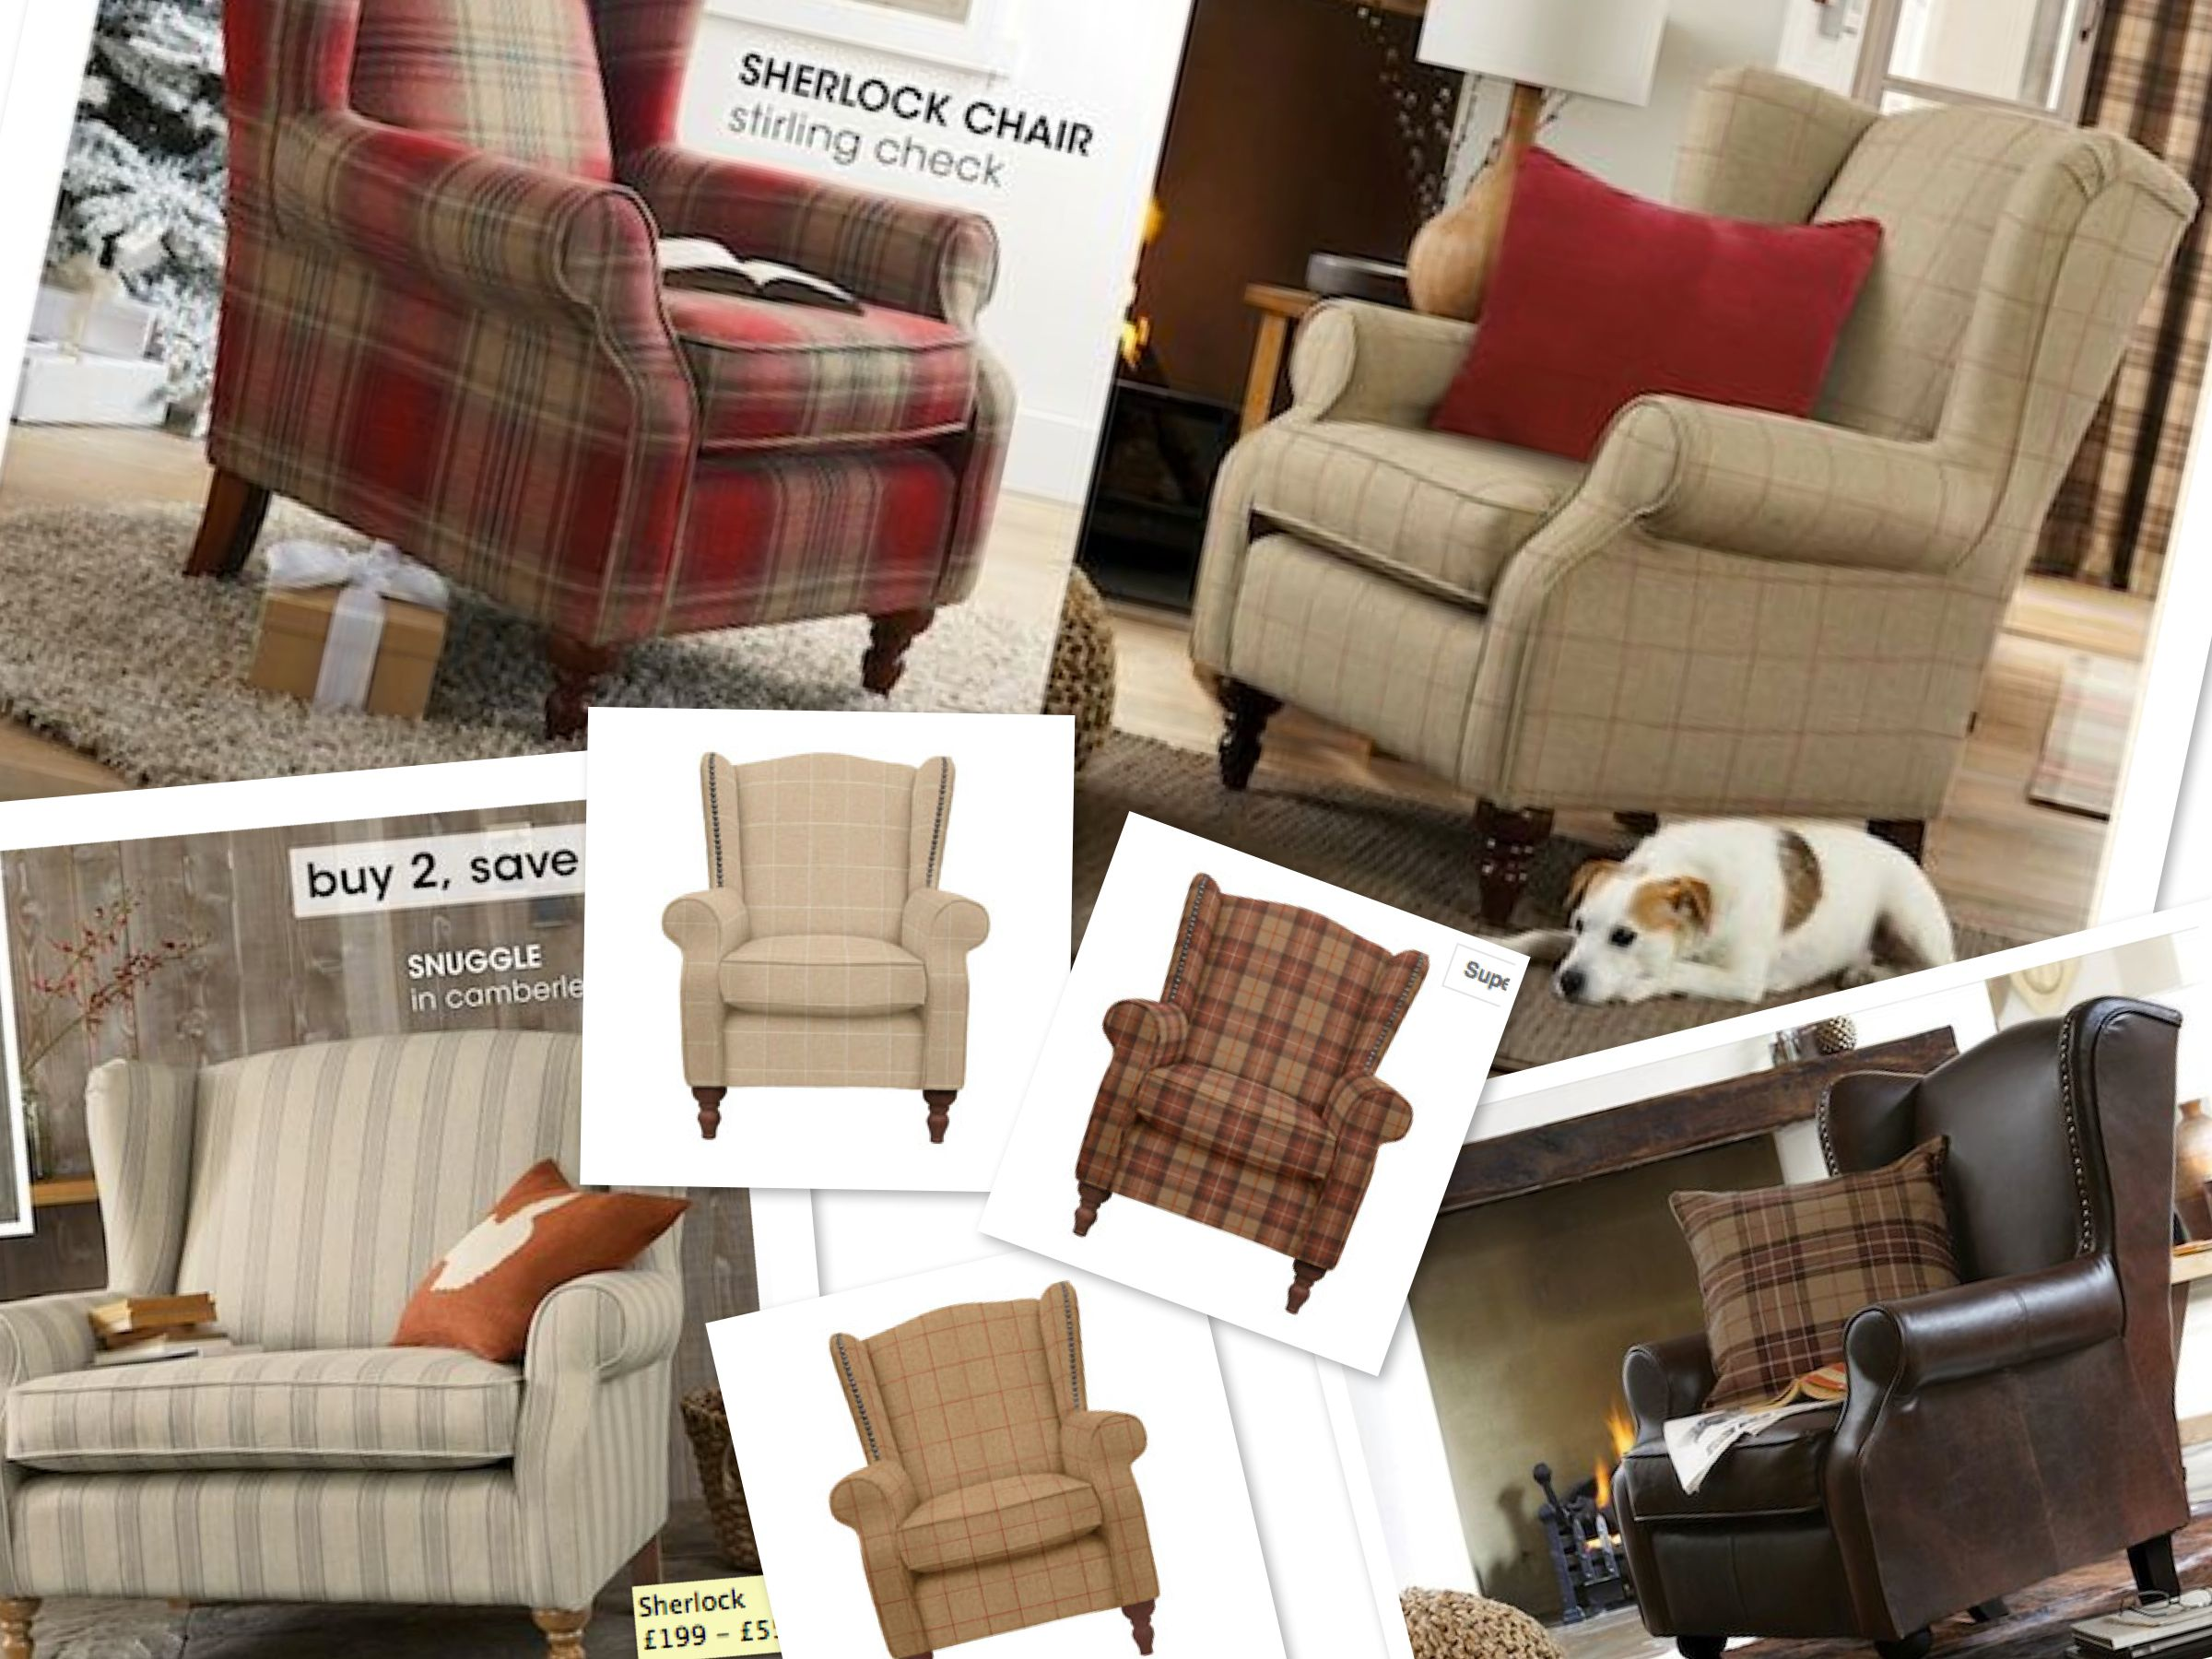 Hd Designs Morrison Accent Chair big comfy chair big joe basketball bean bag chair living room living room comfy chair accent chairs with arms comfortable living room chairs design Find This Pin And More On Accent Chairs